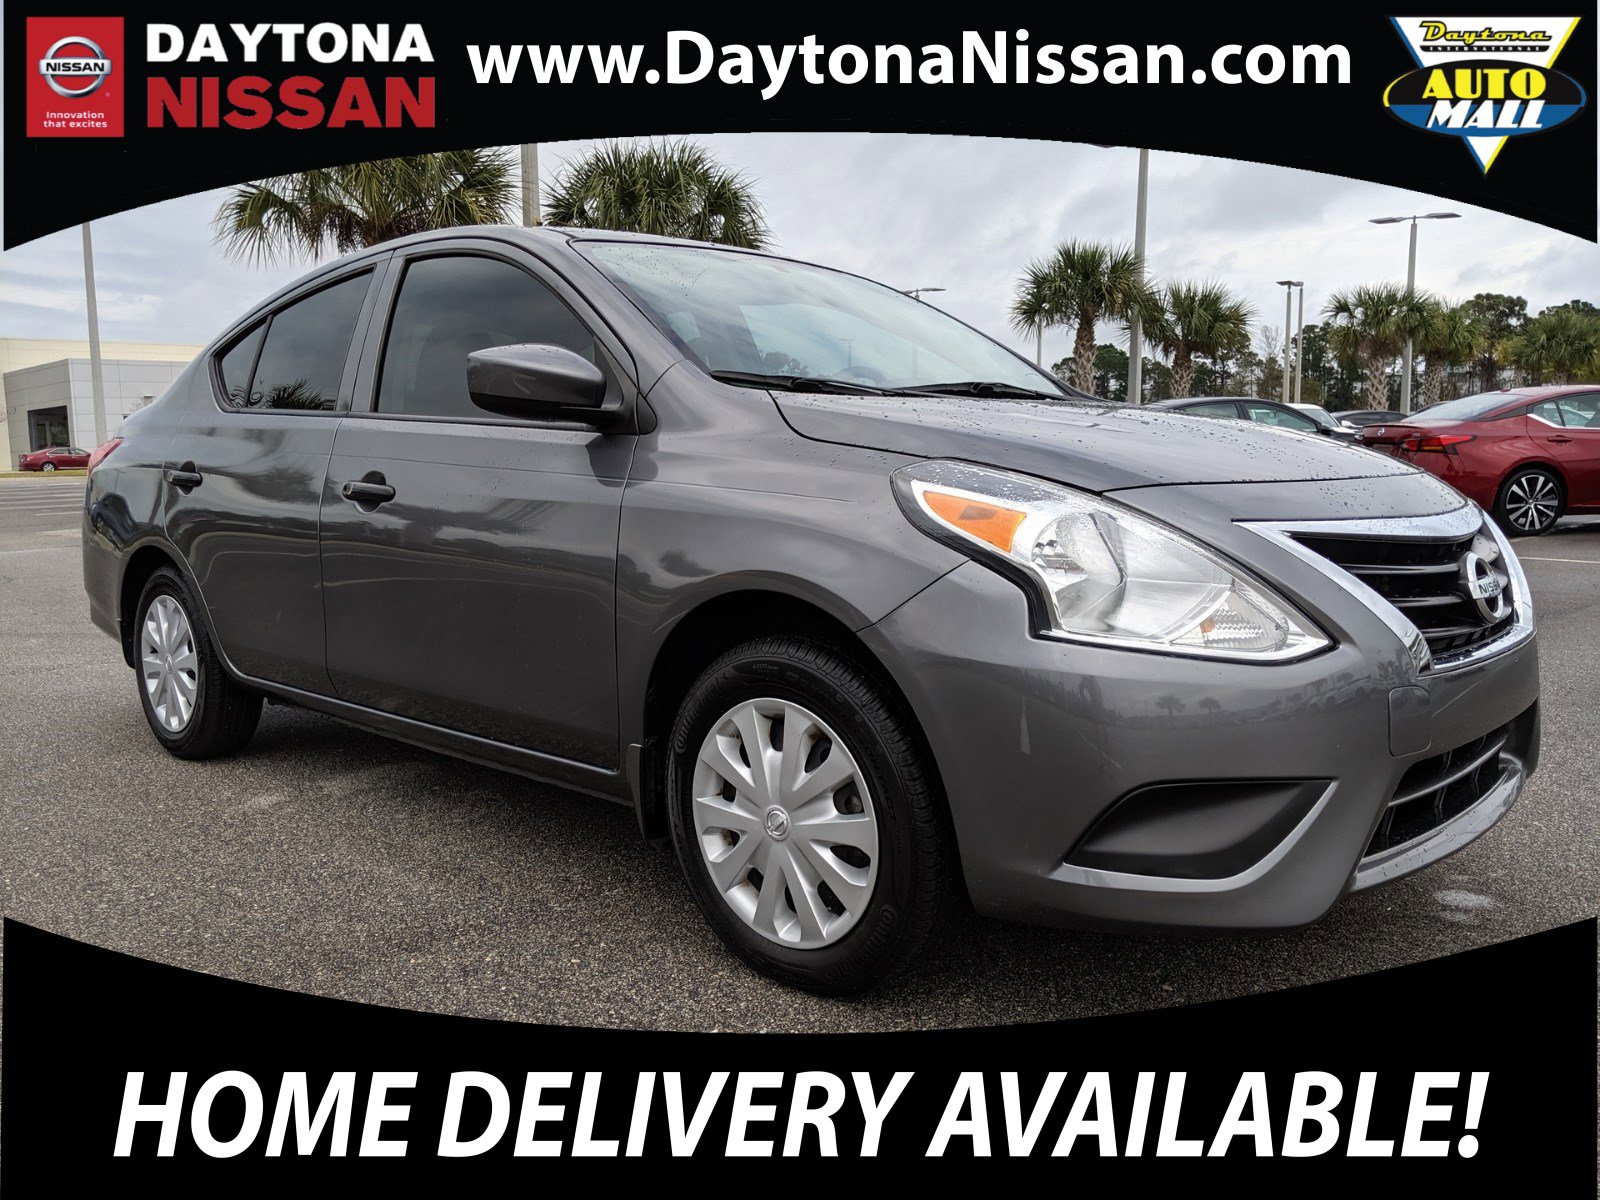 Pre-Owned 2017 Nissan Versa Sedan 1.6 SV